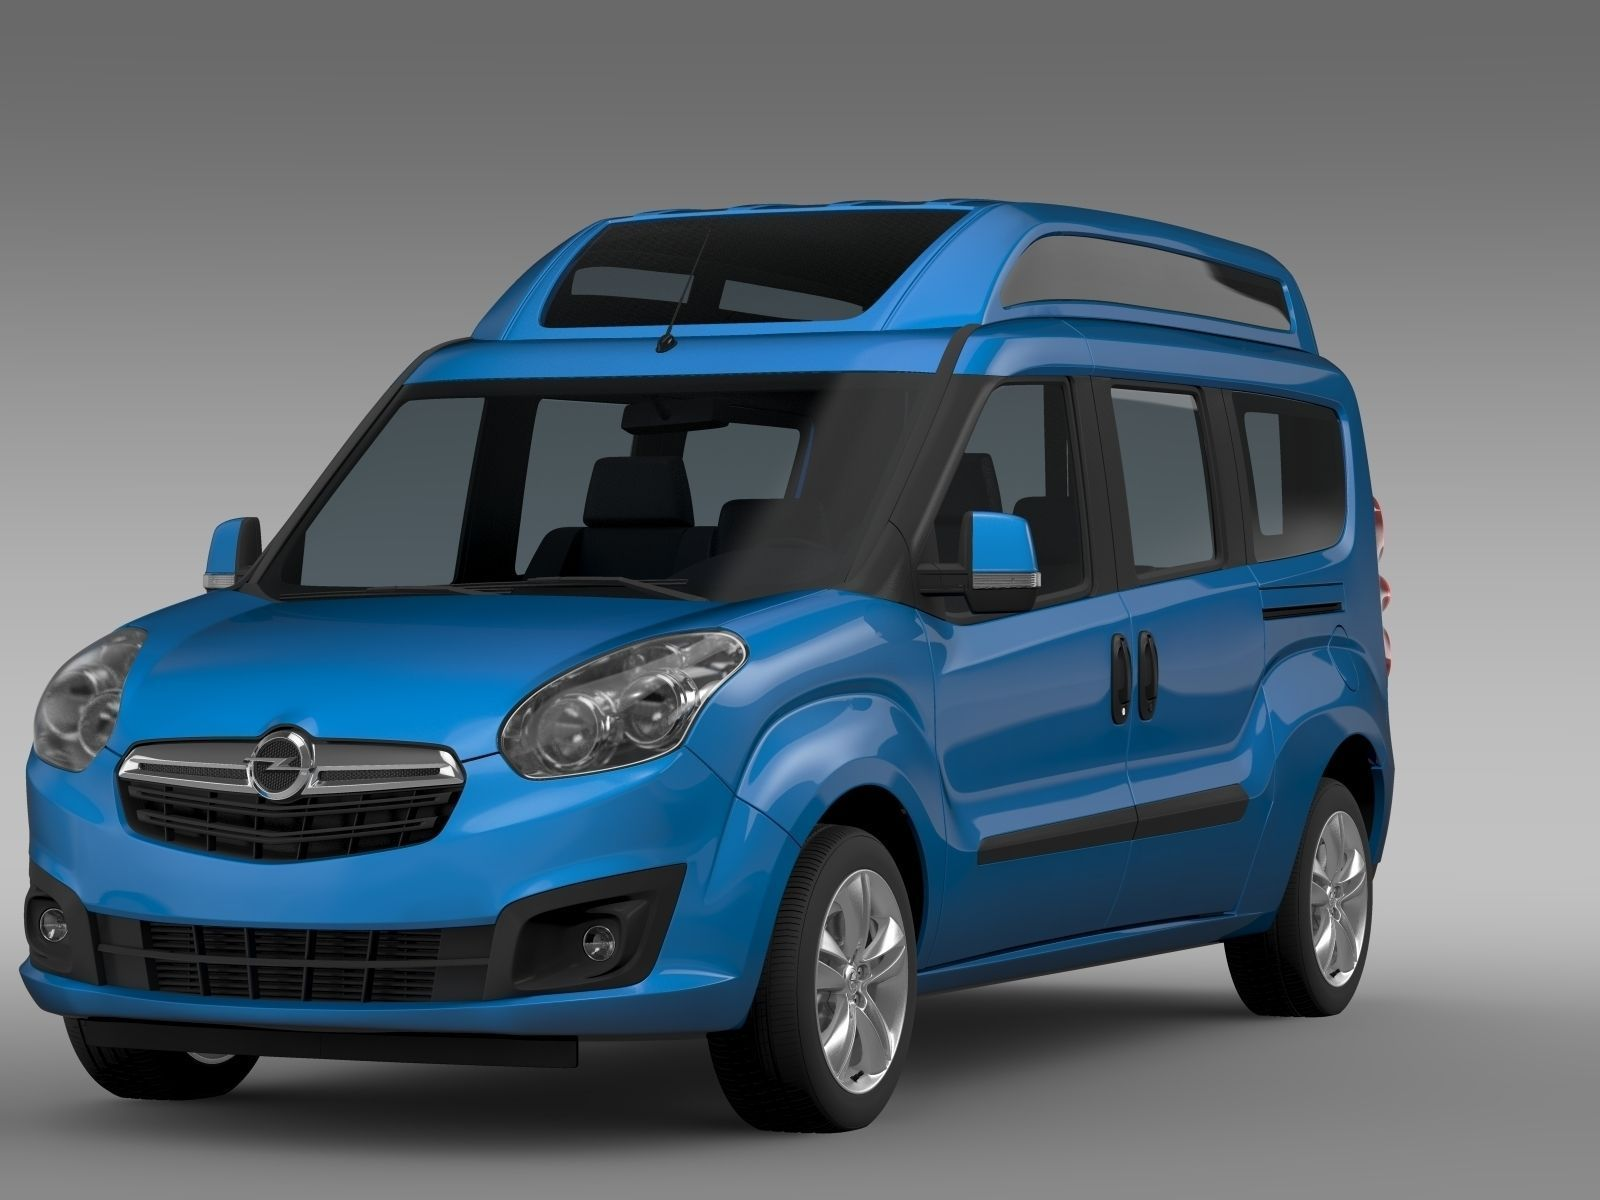 opel combo tour high roof lwb d 2015 3d model max obj 3ds fbx c4d lwo lw lws cgtrader